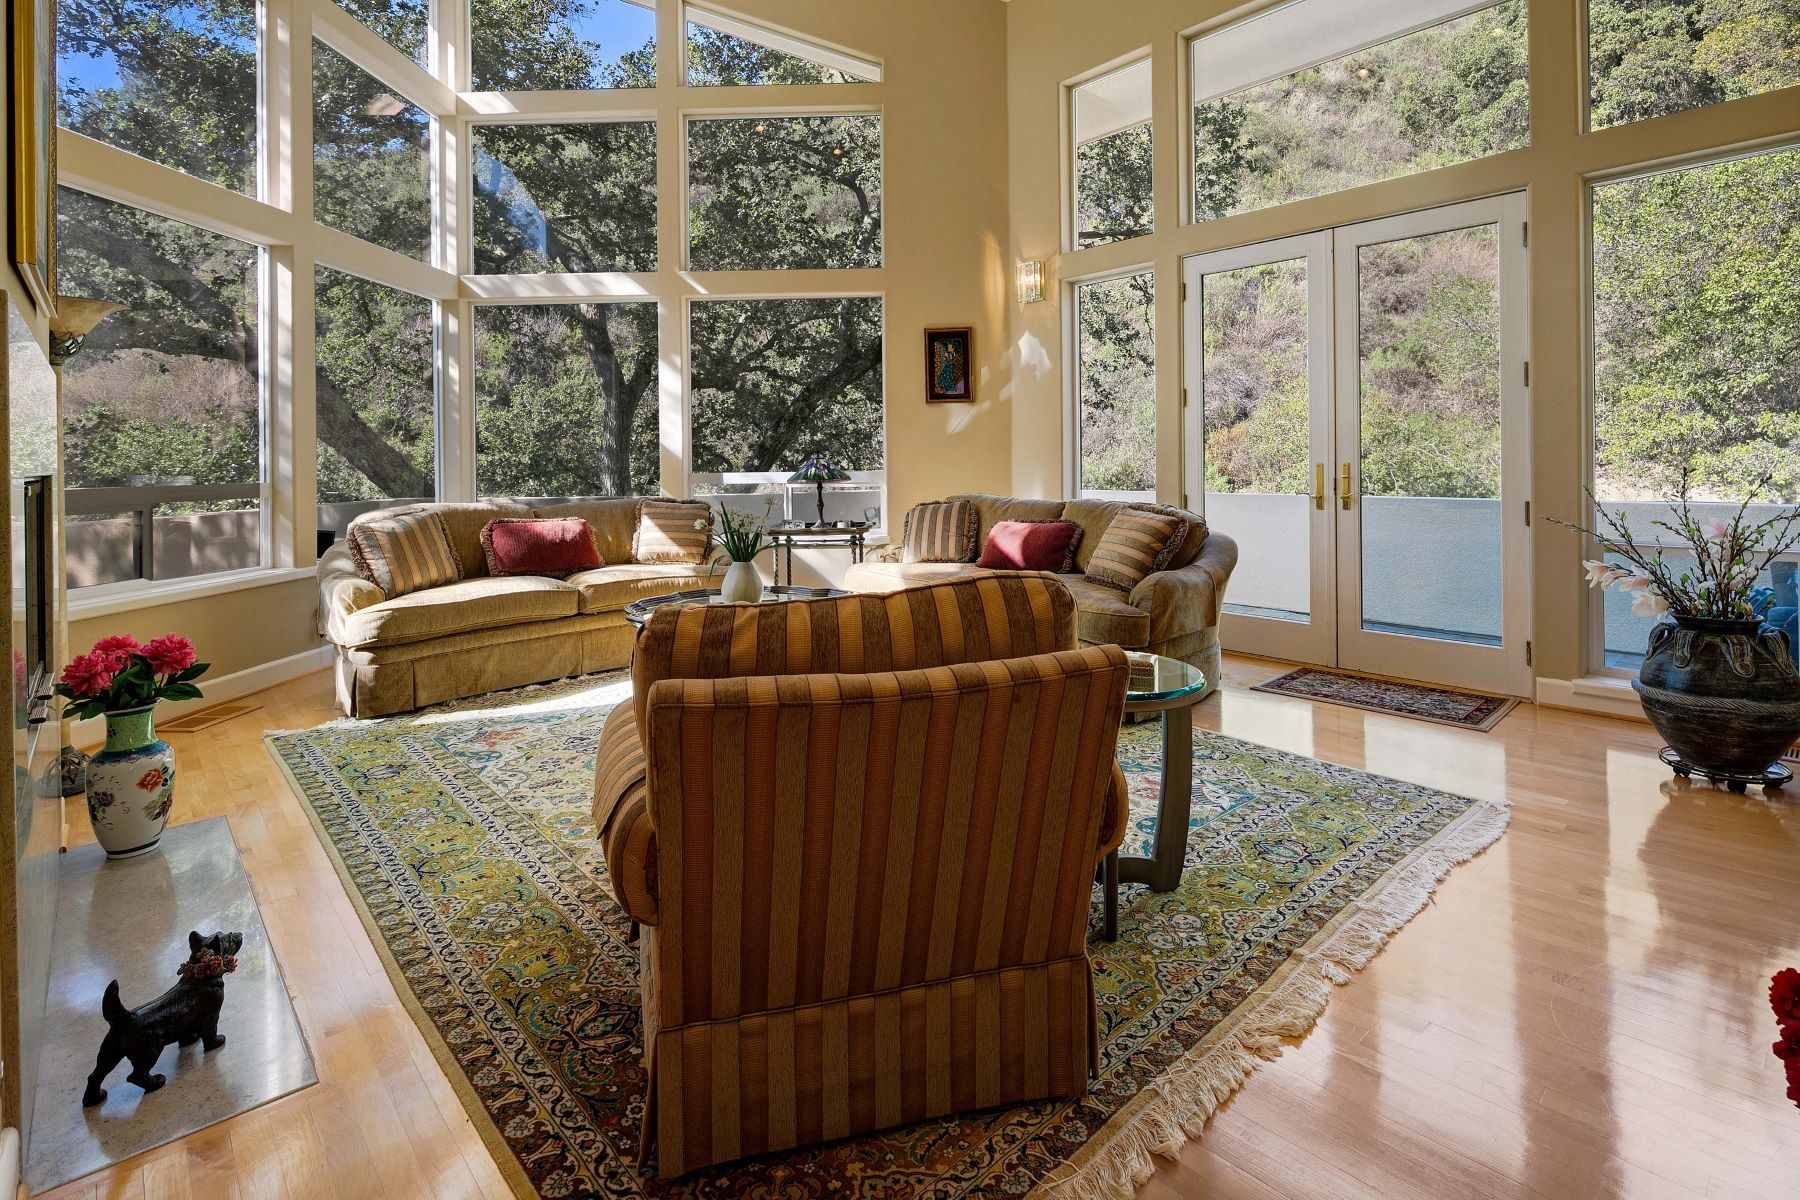 Single Family Homes for Active at Tranquil Roundhill Property 2572 Rolling Hills Court Alamo, California 94507 United States